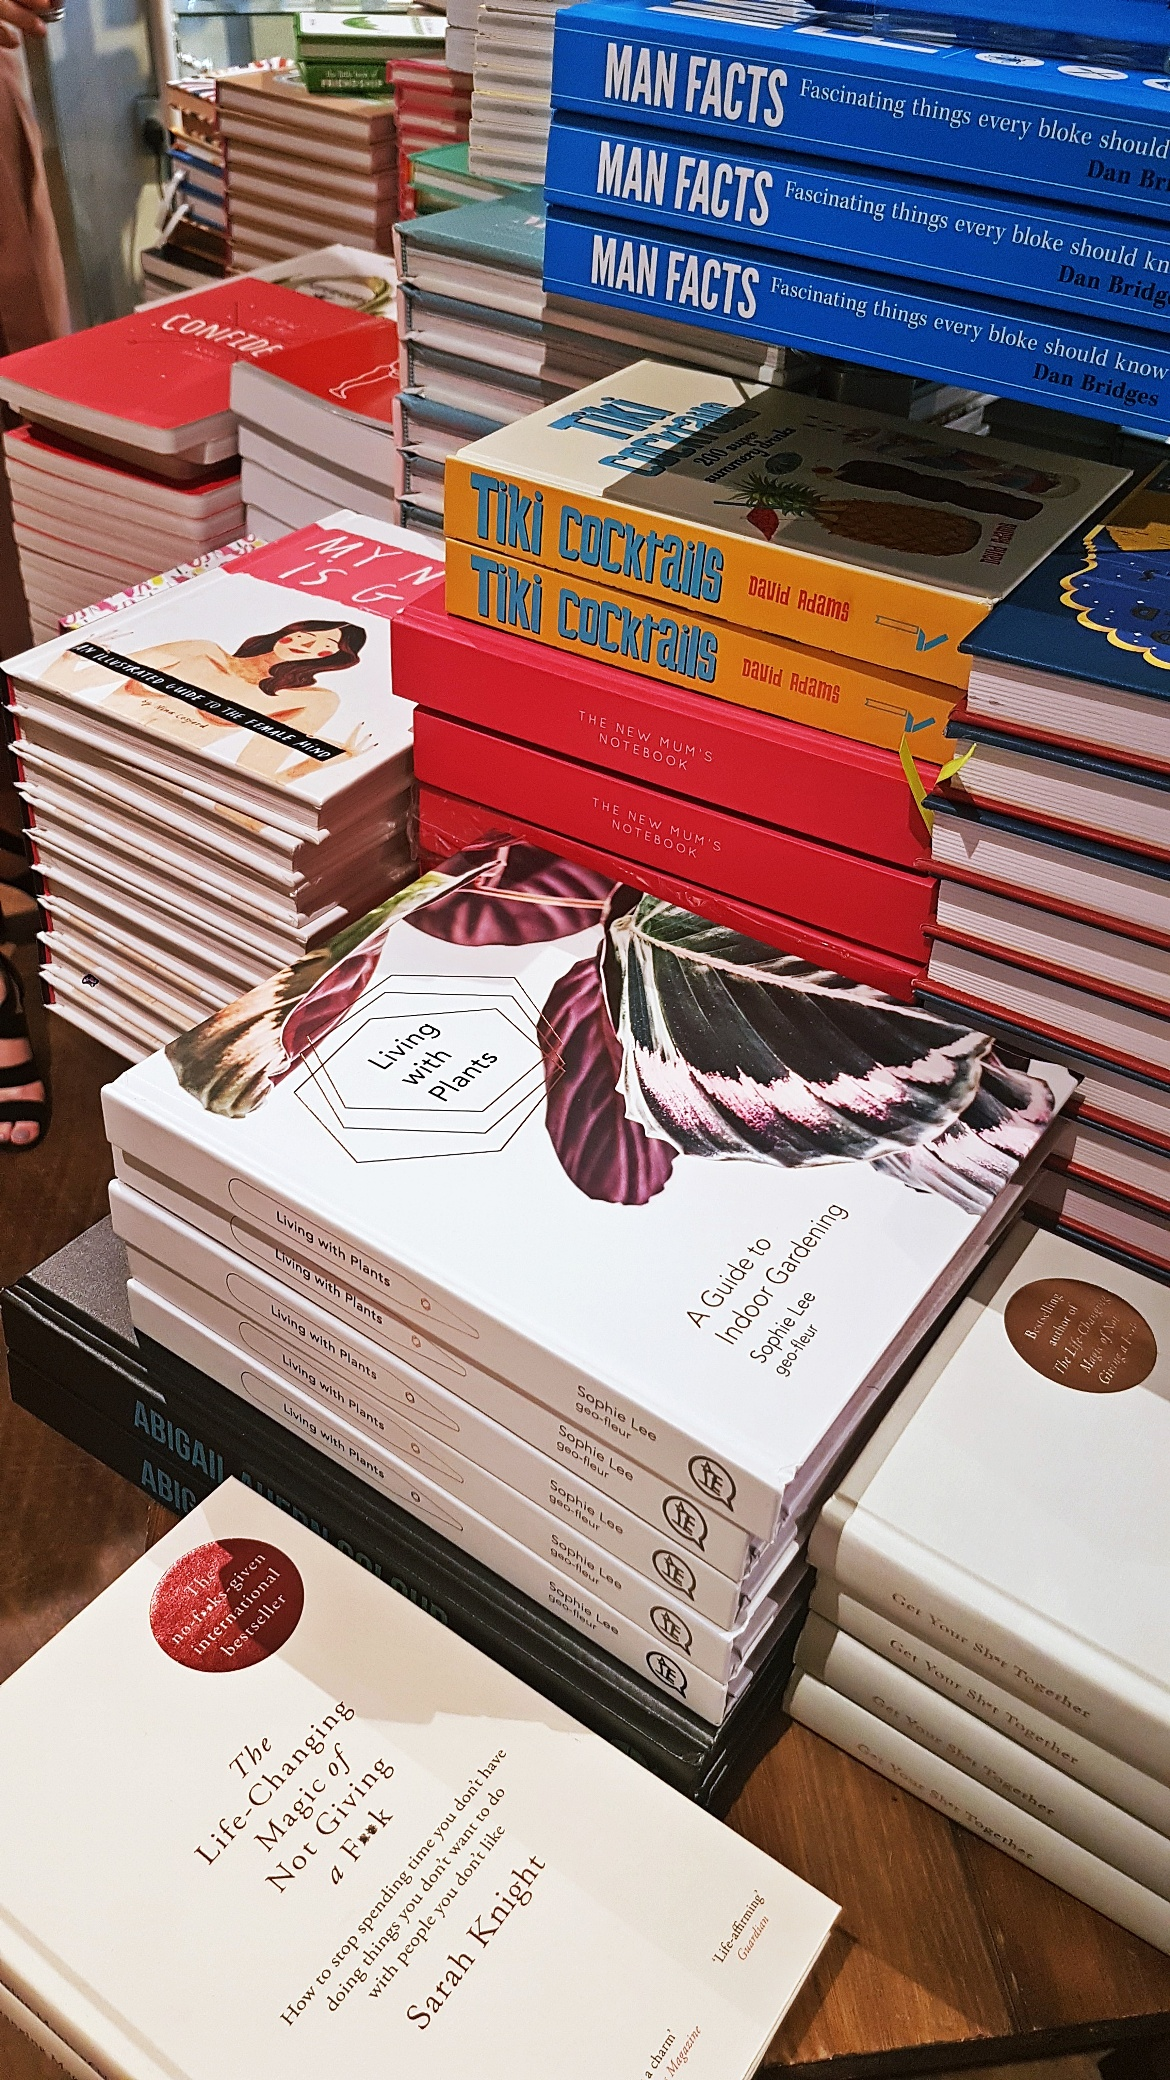 Stacks of books - Tune in with Joy the Store, Leeds shop review by BeckyBecky Blogs